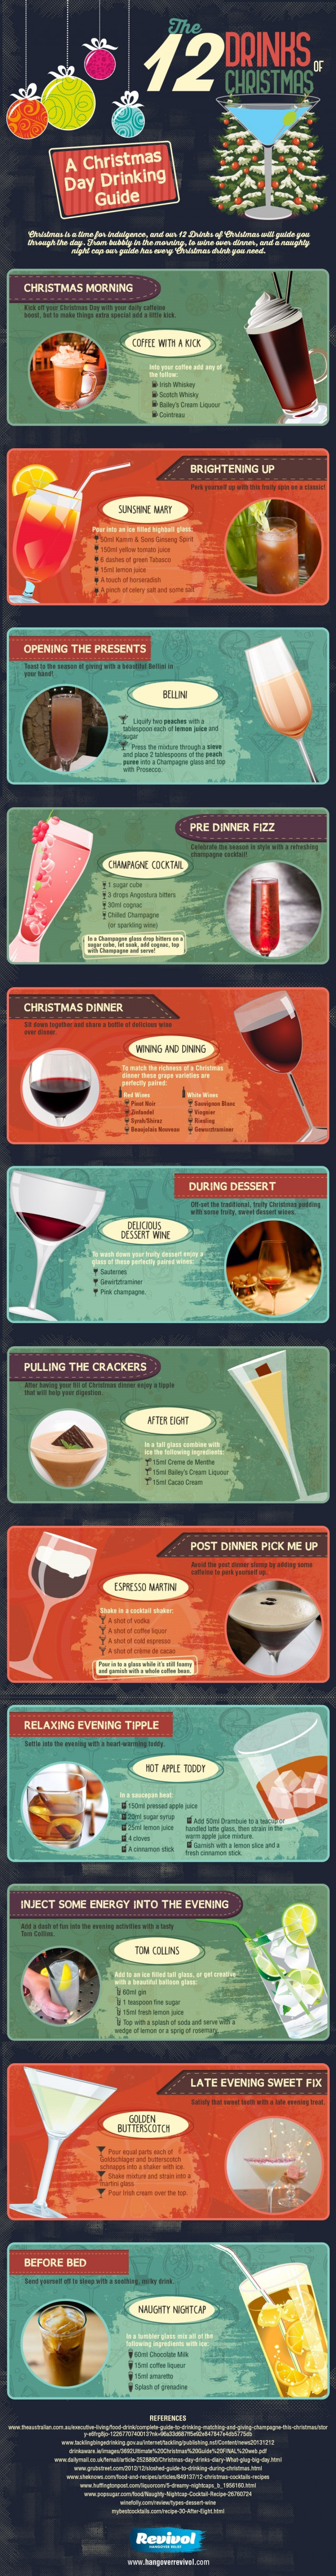 [INFOGRAPHIC] �The 12 Drinks of Christmas � A holiday drinking guide�